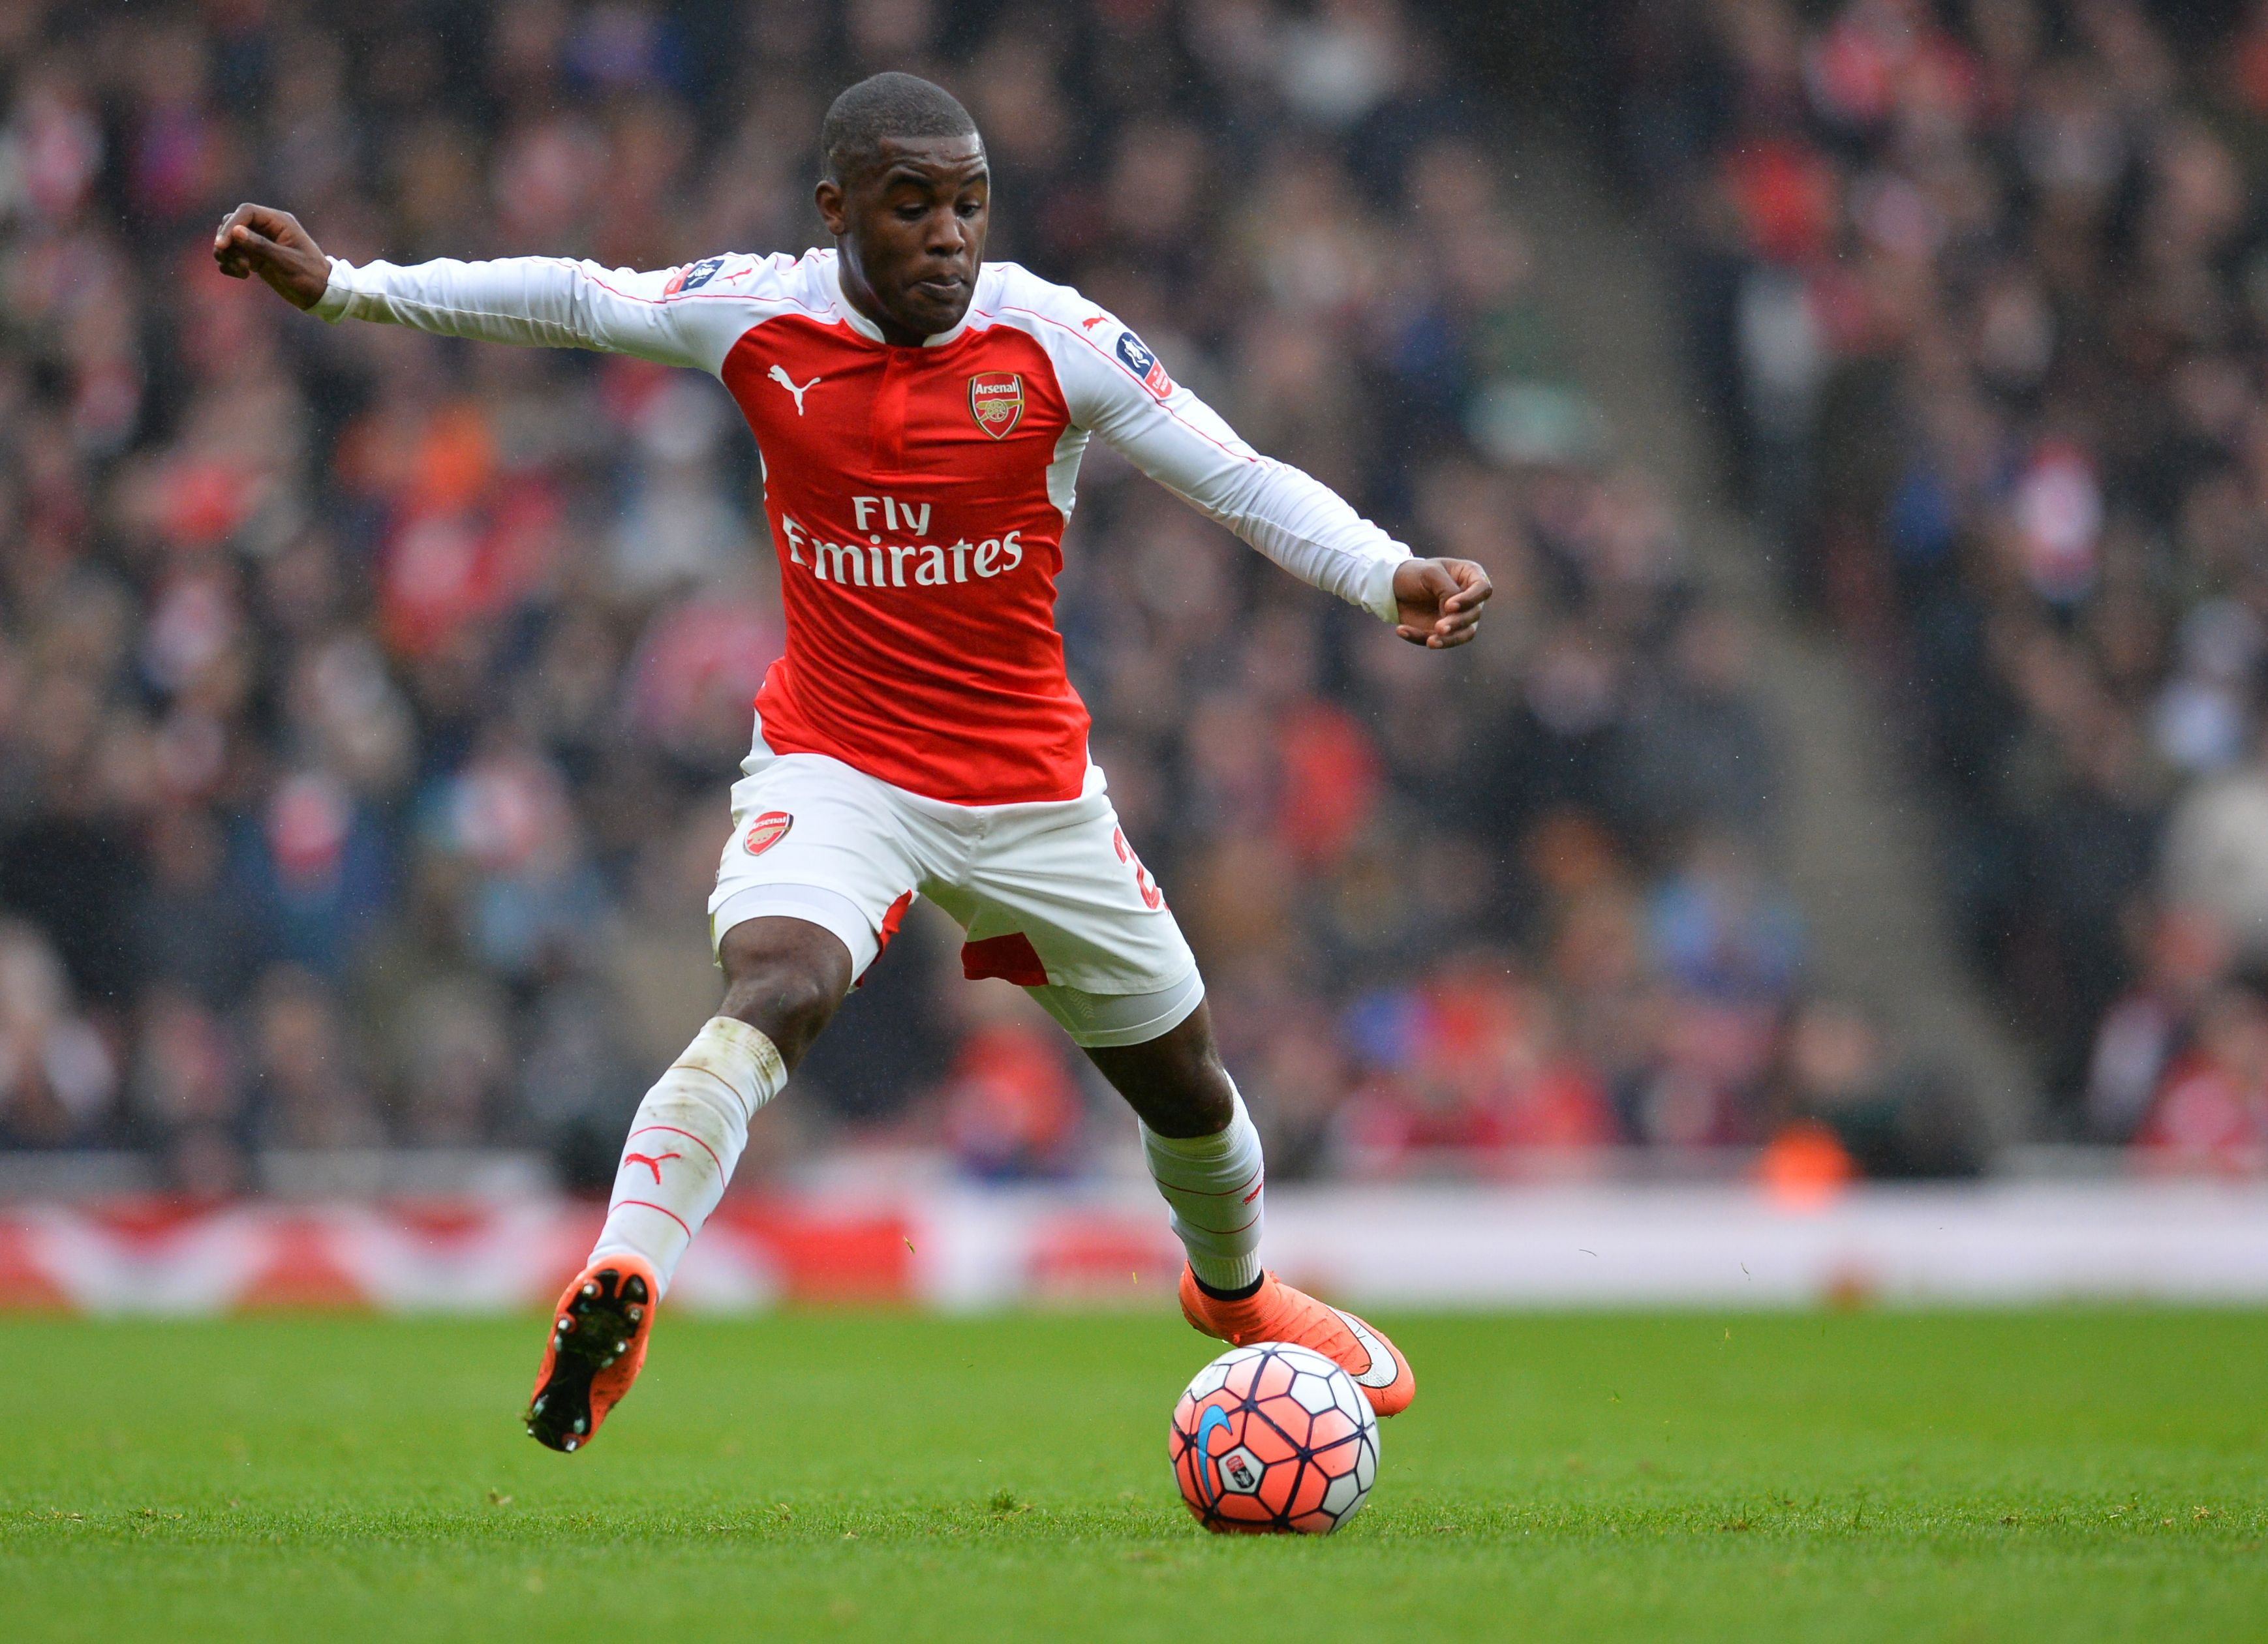 Is Joel Campbell the player Arsene Wenger needs to reignite Arsenal's Premier League title challenge?